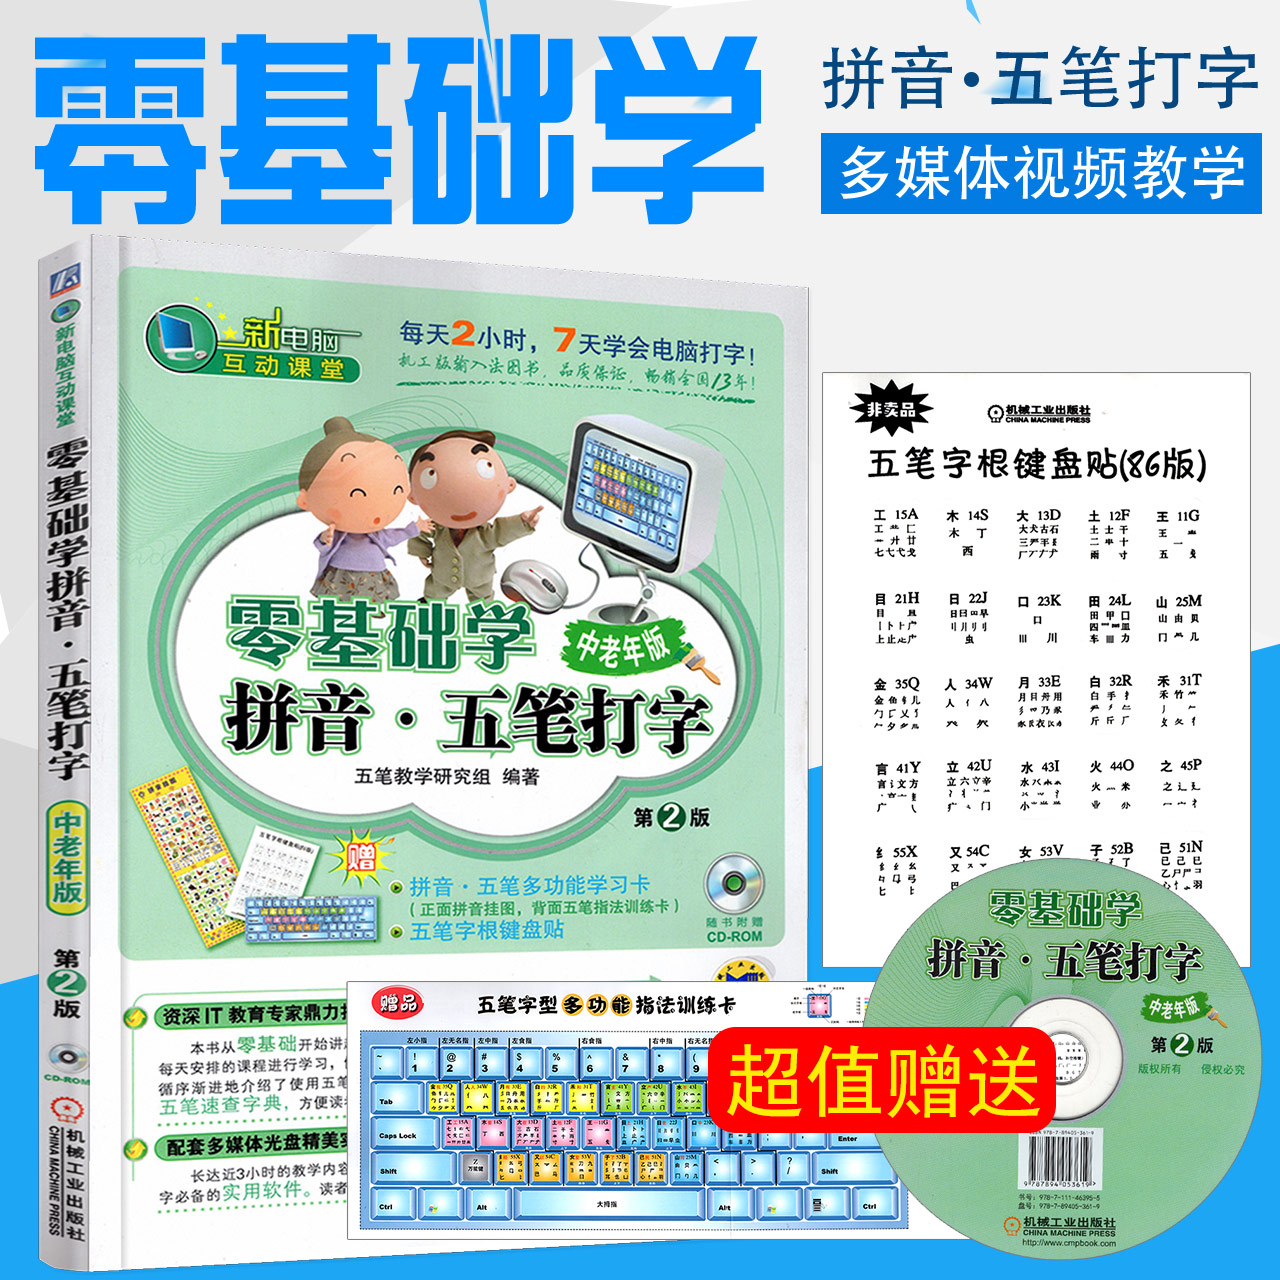 Five Typing Course Books Zero Basic Learning Pinyin for beginners Computer  Introduction Course Books Computer Basic Application Course Books for